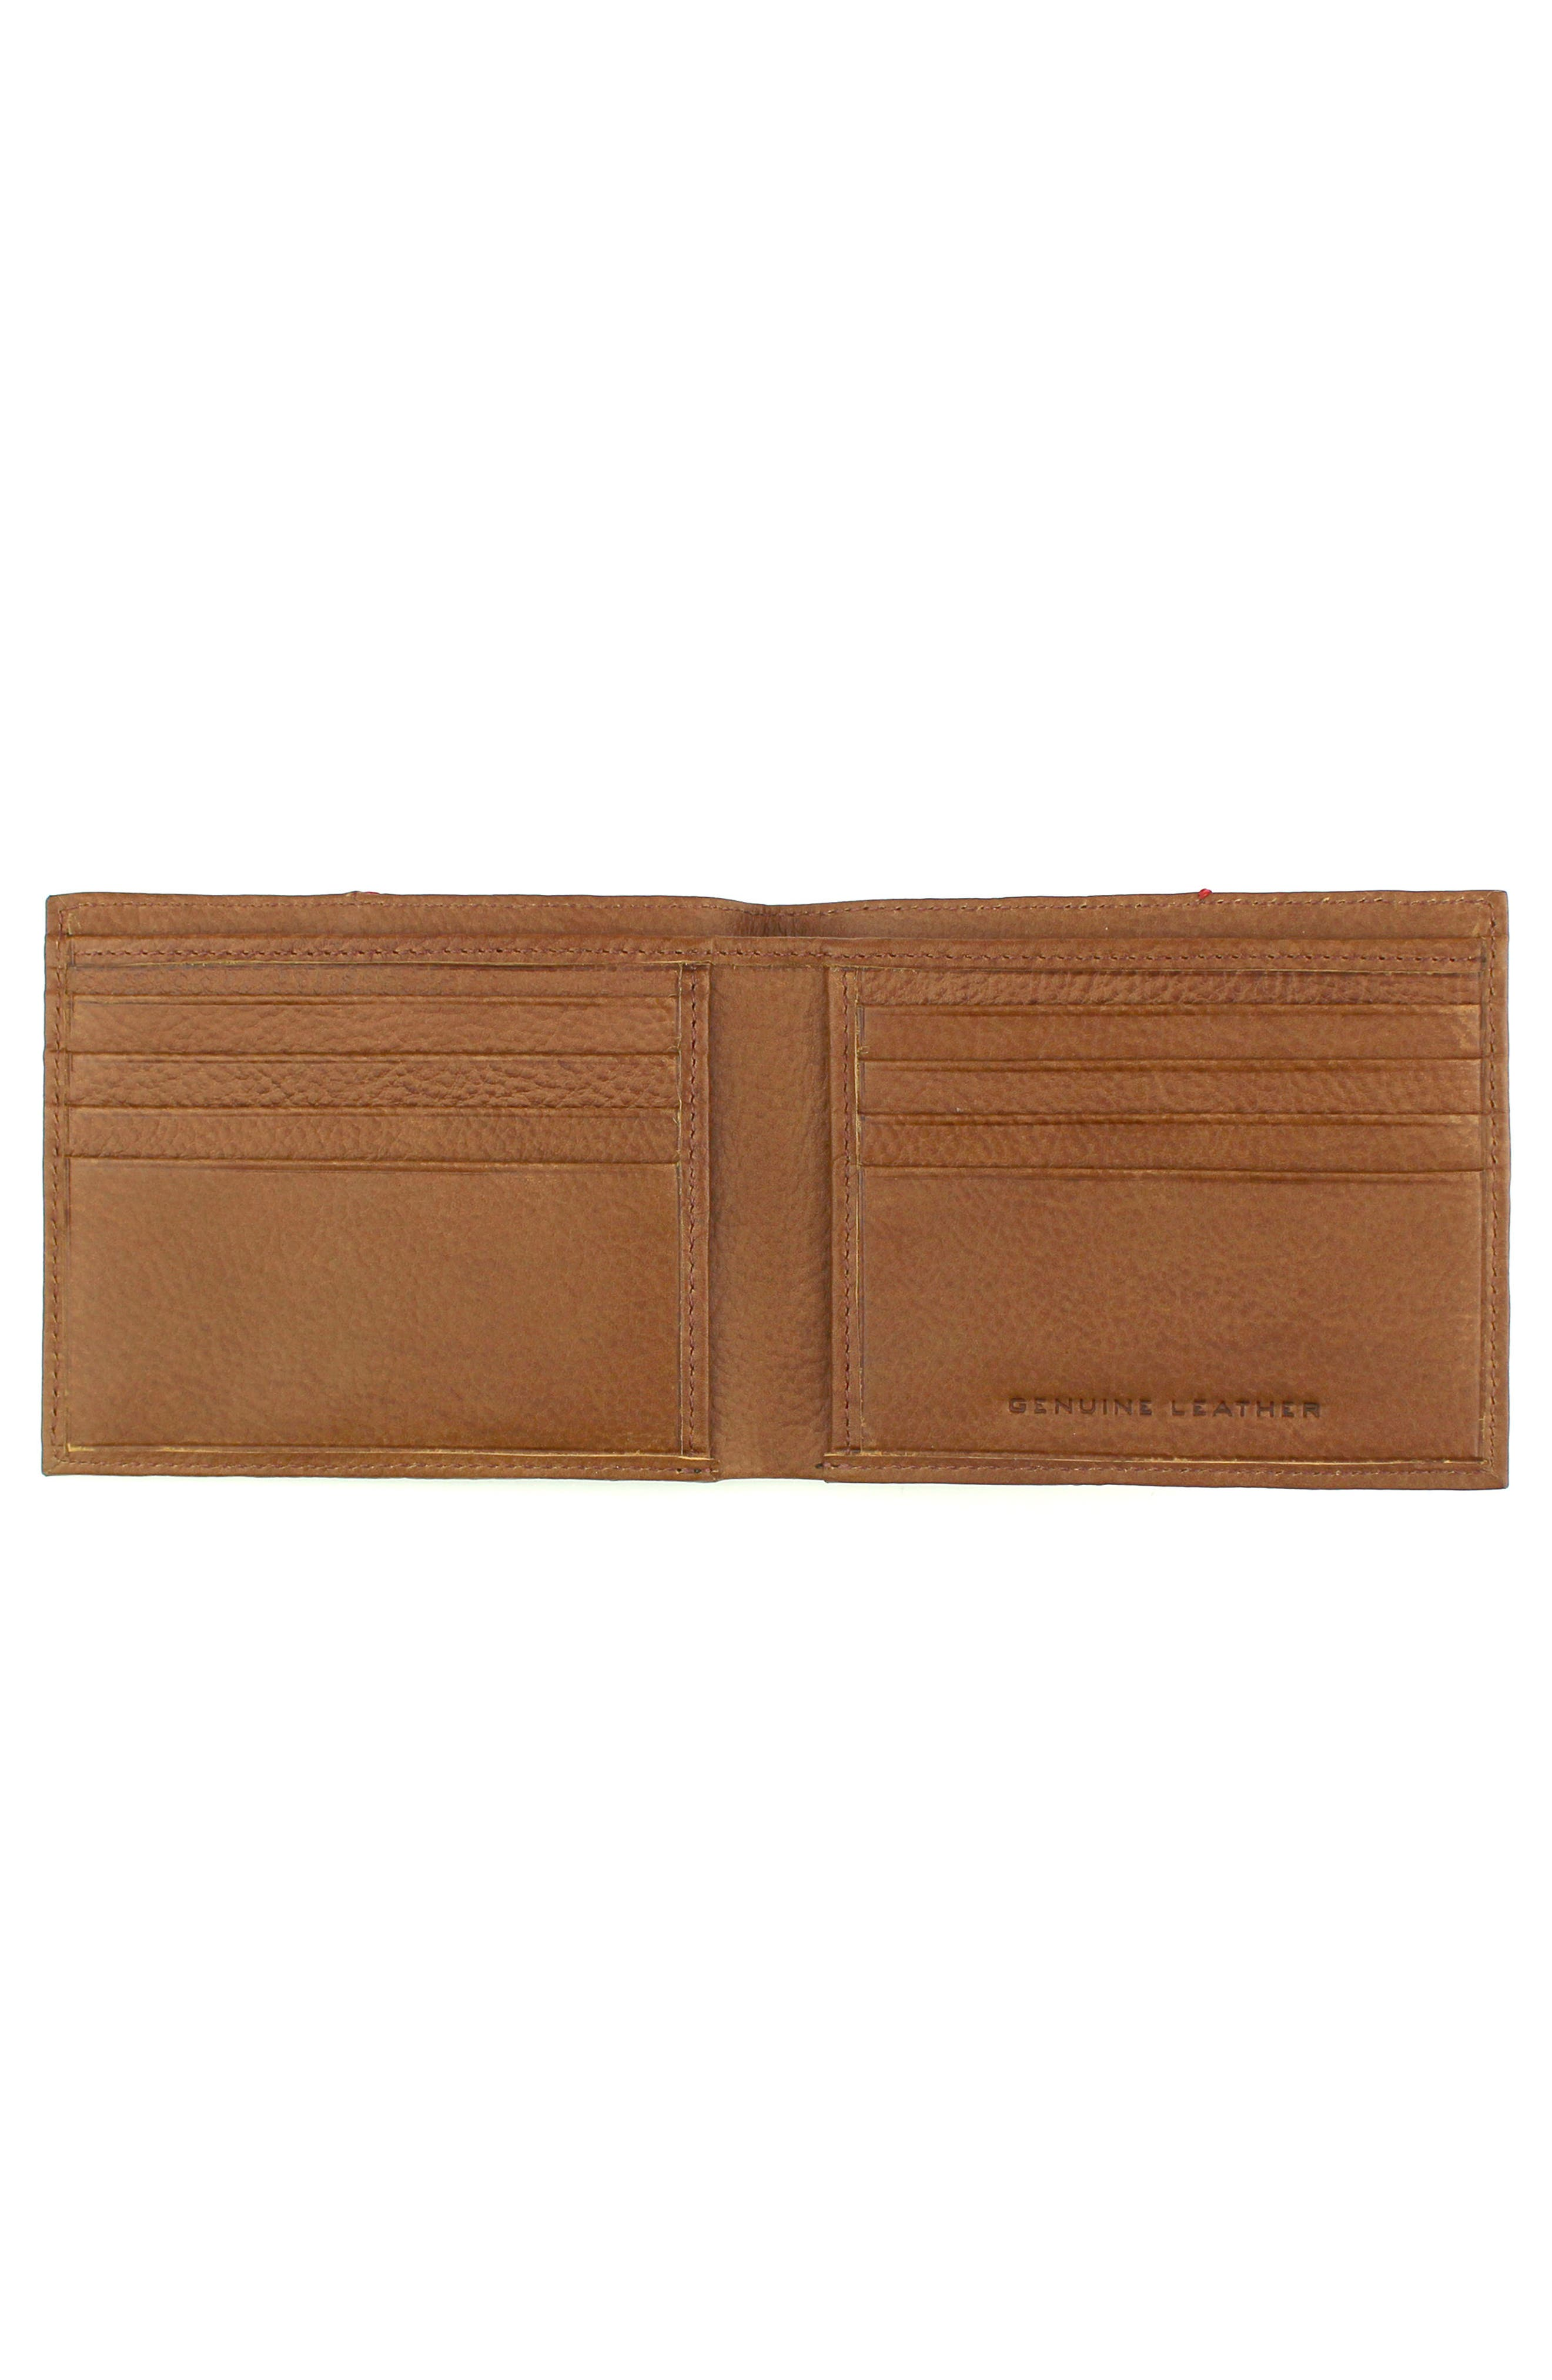 Home Run Bifold Leather Wallet,                             Alternate thumbnail 3, color,                             202